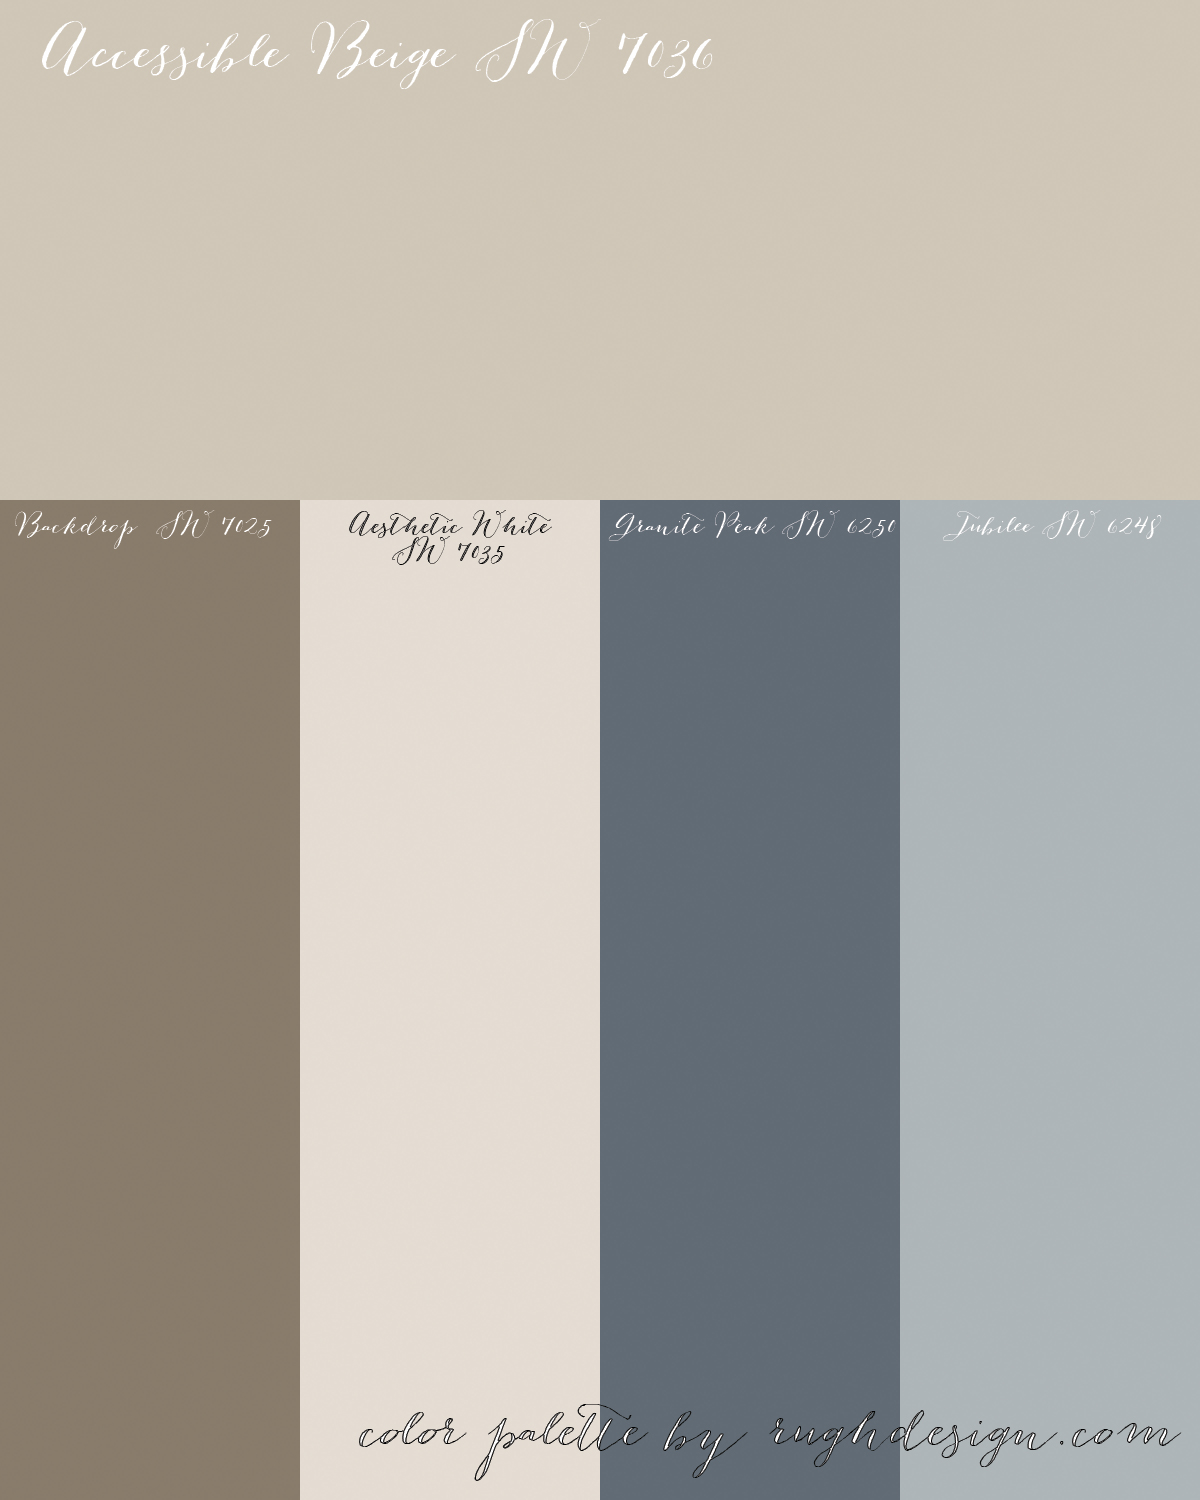 Accessible Beige SW 7036 With A Complementary Color Scheme